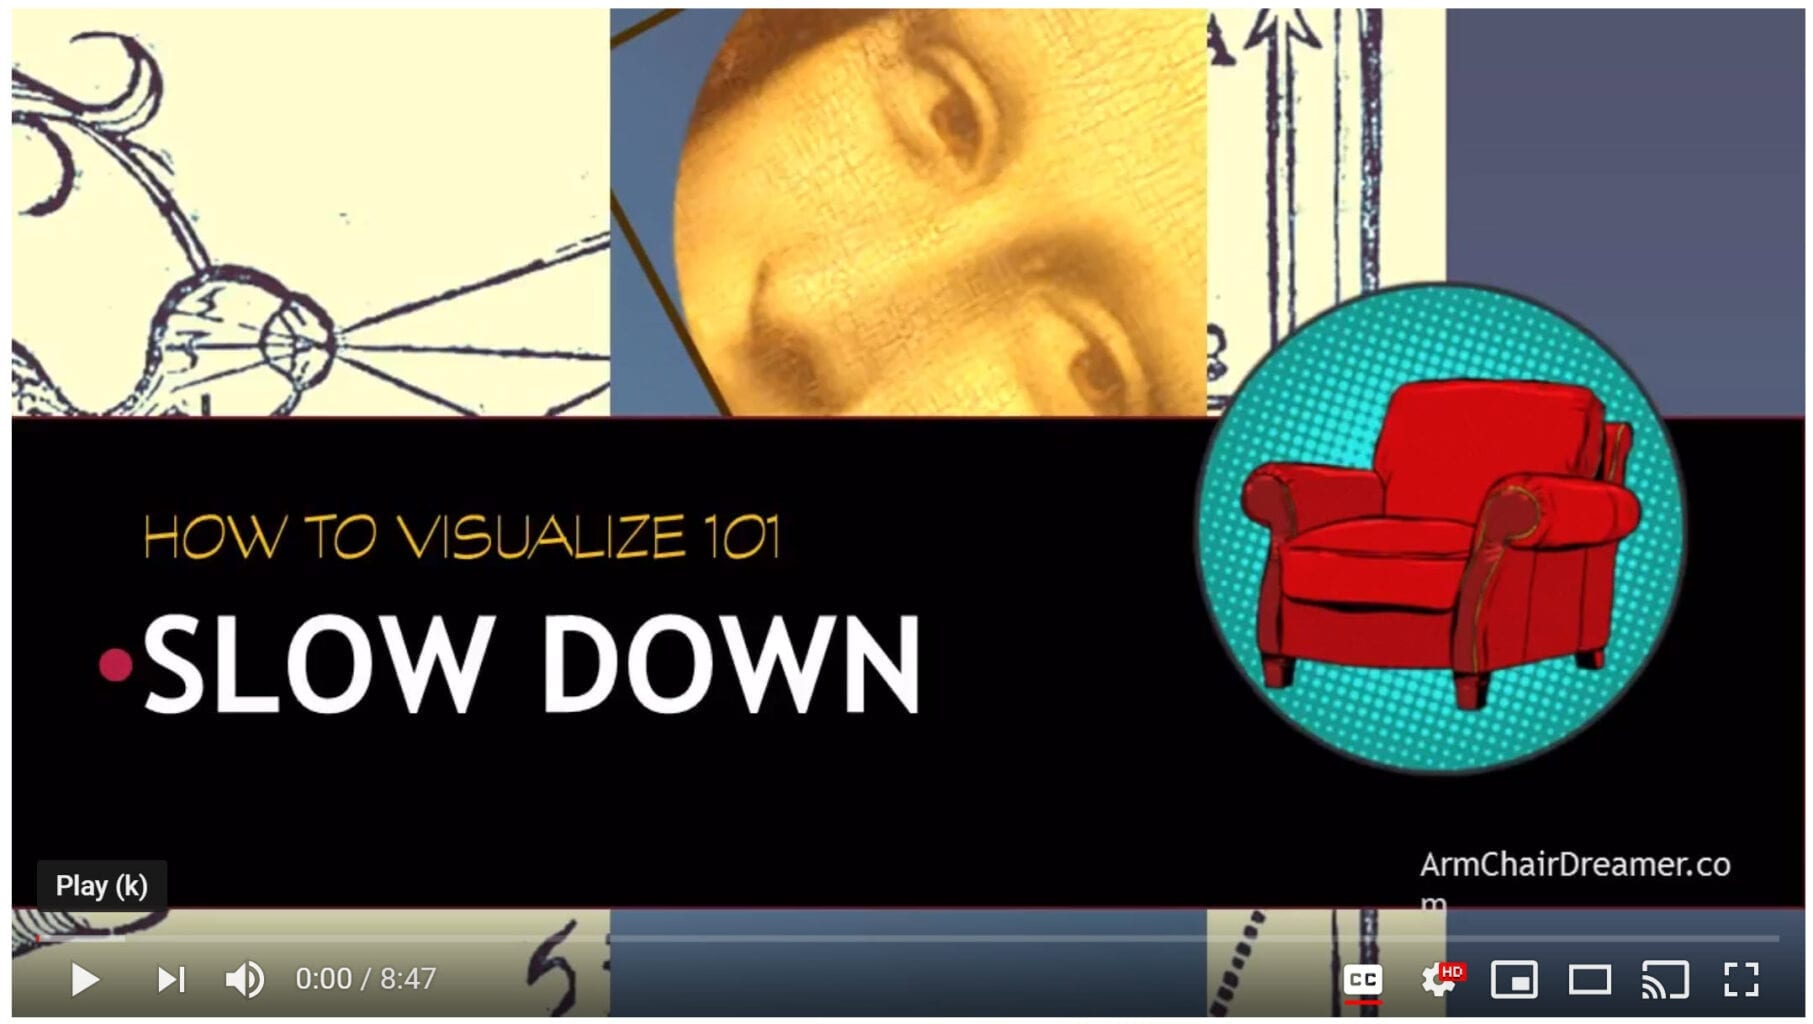 How to Visualize 101 – Step 1 – [Visualize Video]